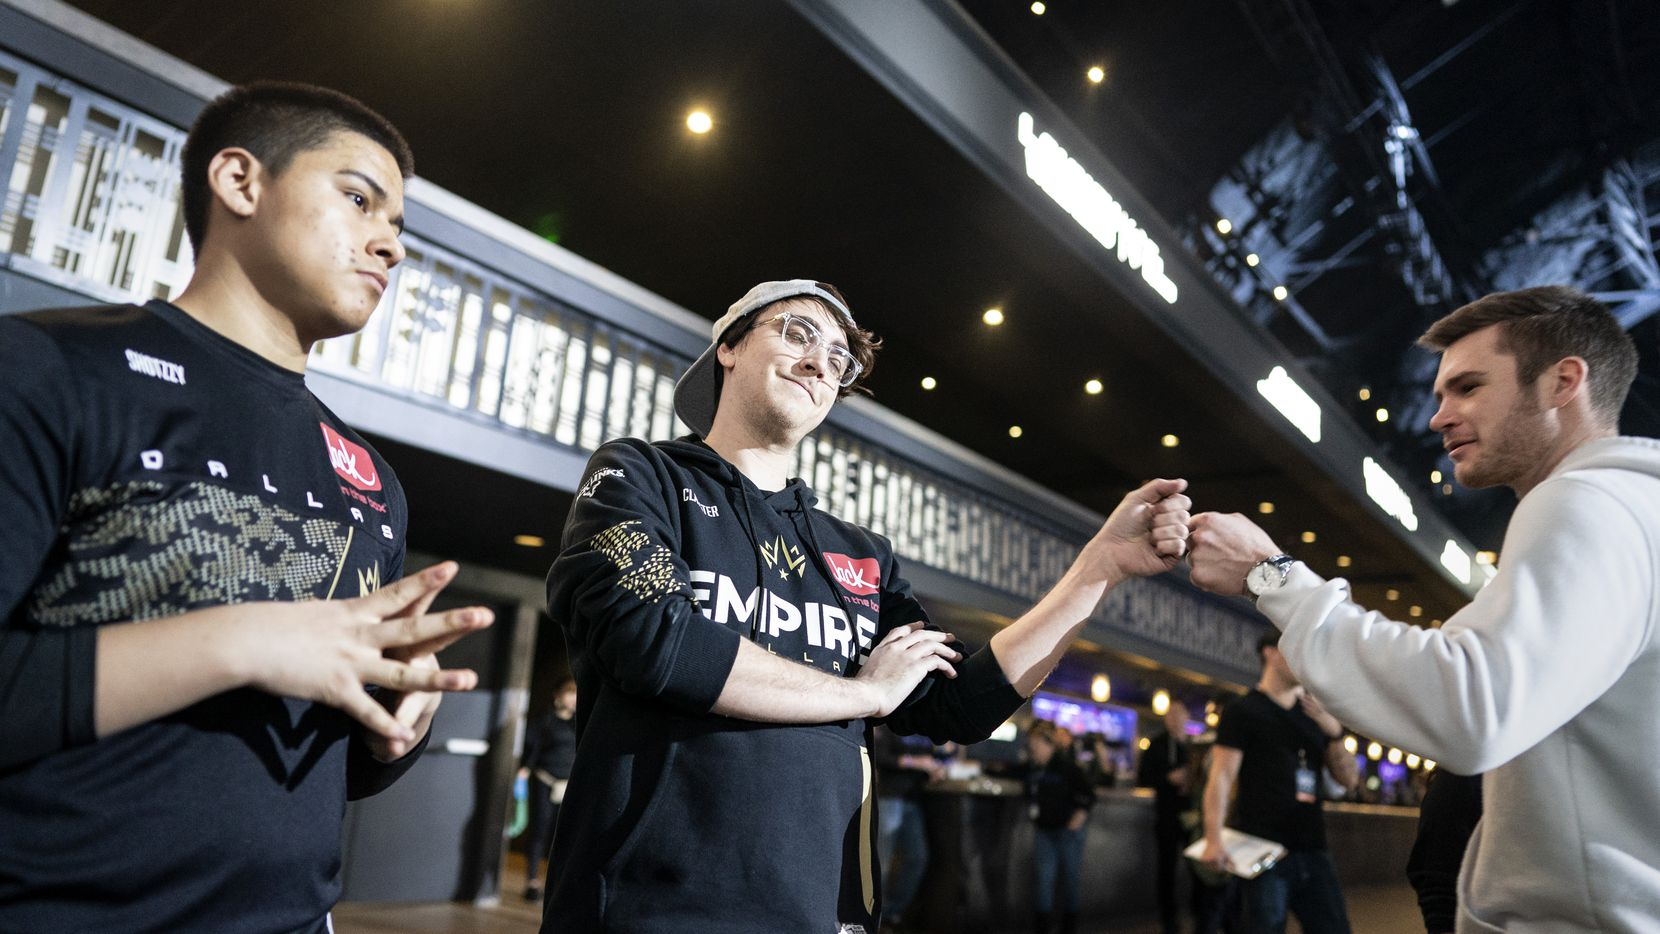 Clayster (James Eubanks), center, greets a fan as he and teammate Shotzzy (Anthony Cuevas-Castro), left, prepare for the Dallas EmpireÕs match against the Chicago Huntsmen in the Call of Duty League Launch Weekend at the Armory in Minneapolis, Minn., January 24, 2020.